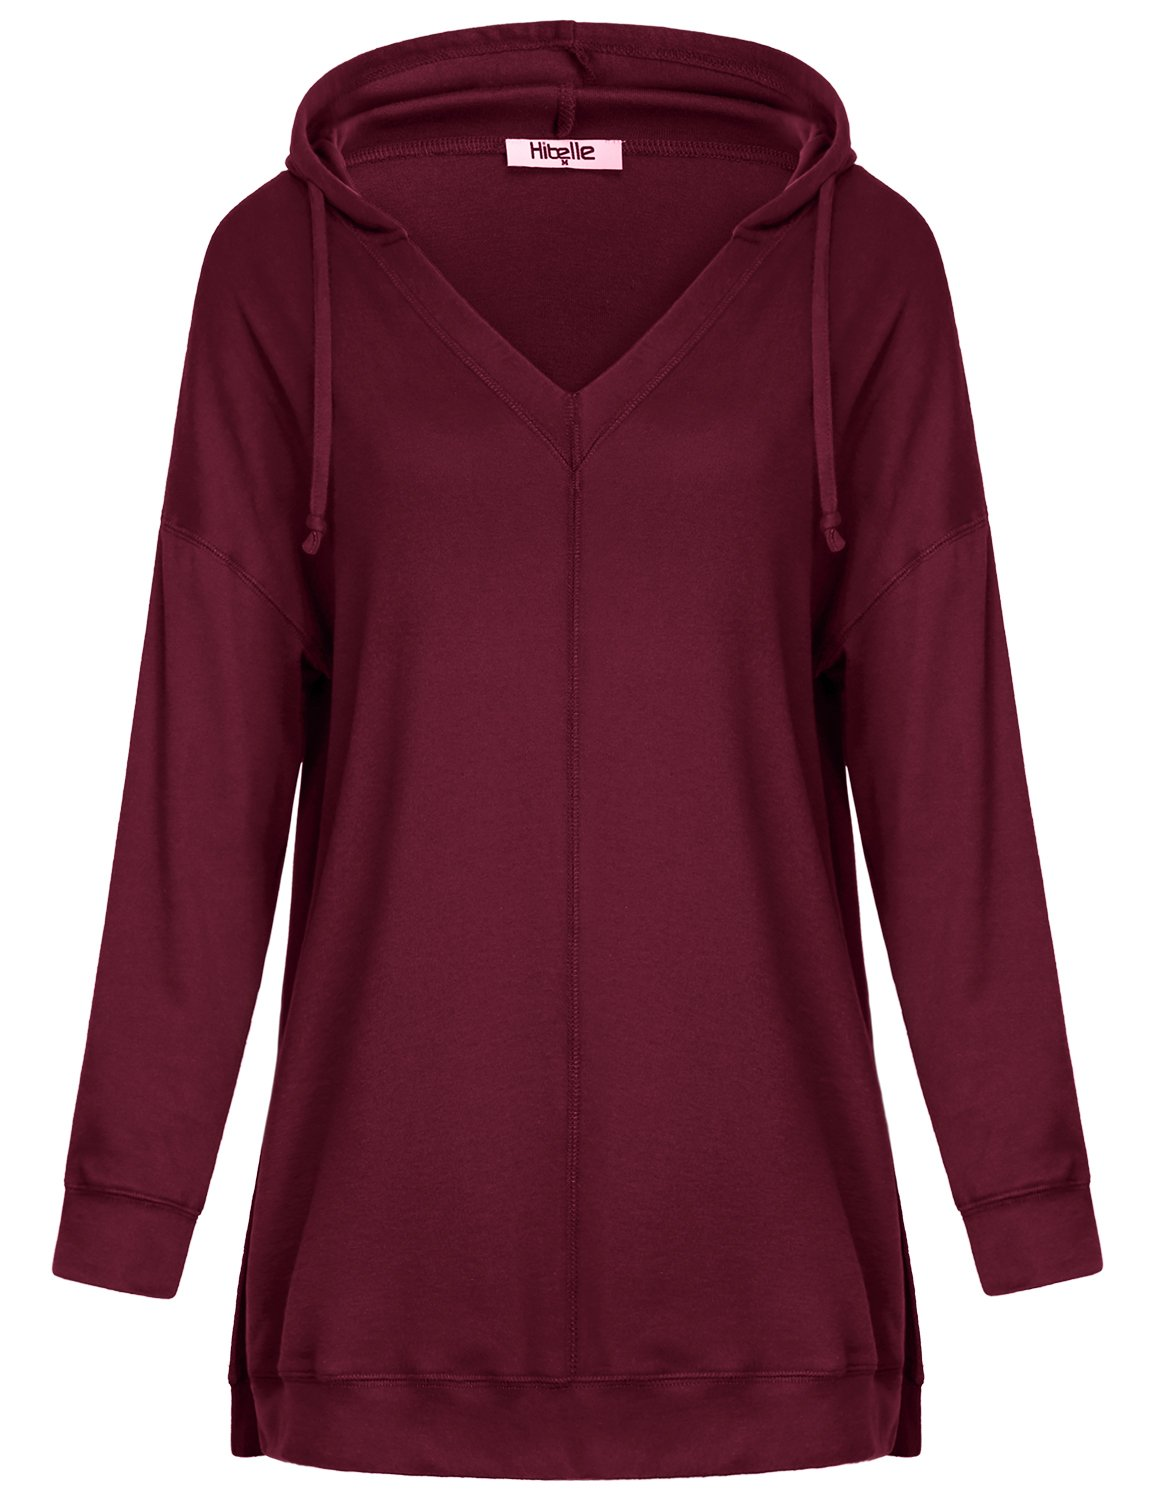 Hibelle Rouched Tops For Women, Ladies Long Drop Shoulder Sleeve A-Line Flared Hemline Loose Relaxed Fit Business Comfy Flowy Tunic Clothes Sweatshirt Wine Medium